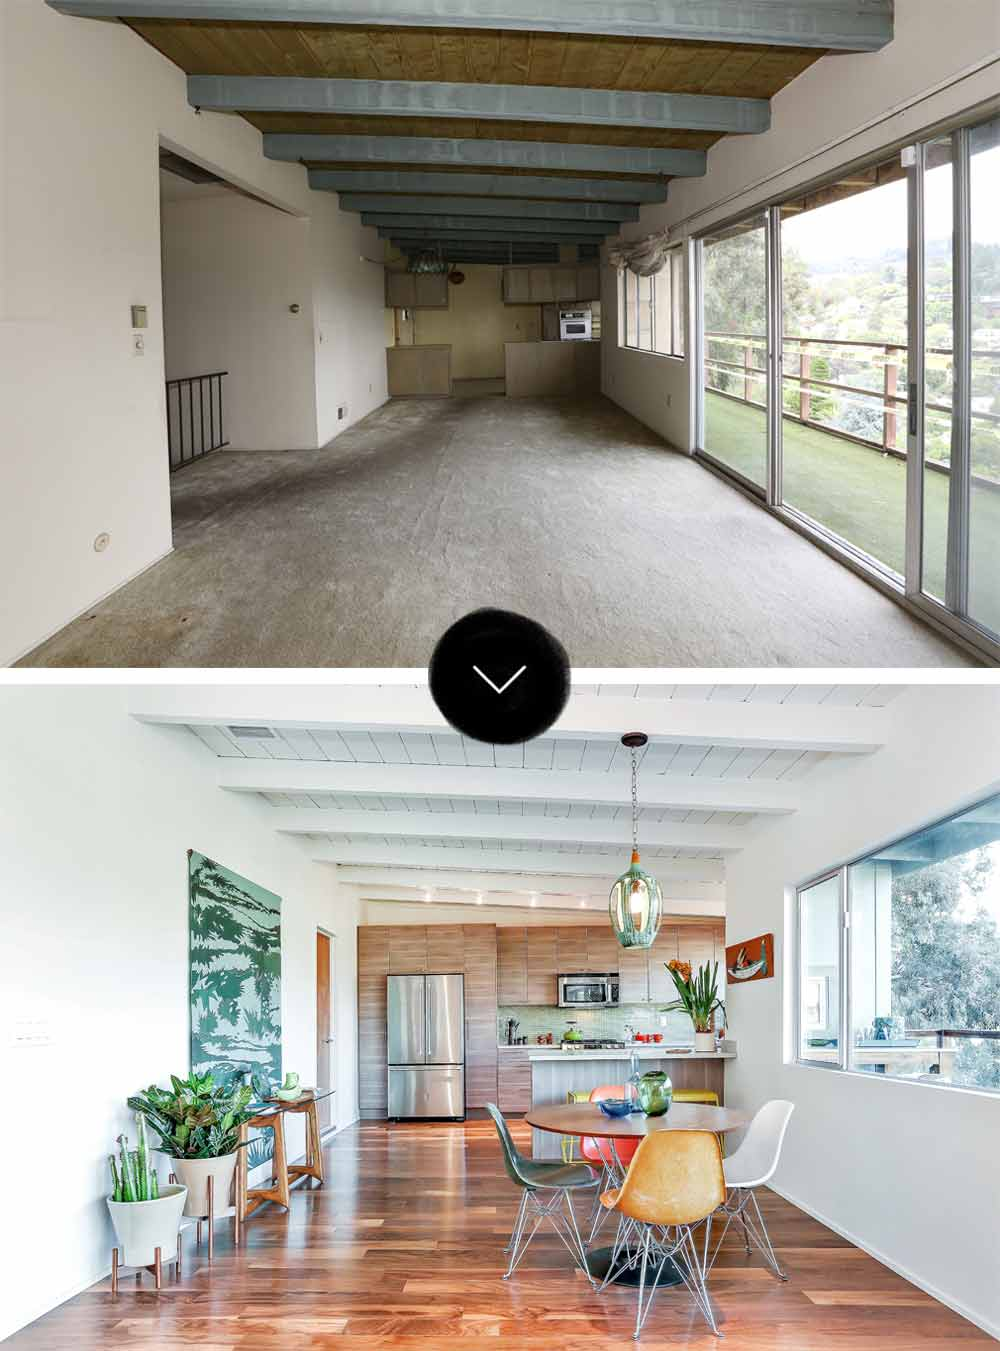 Before After A Mid Century Post And Beam Home In Mt Washington Design Sponge